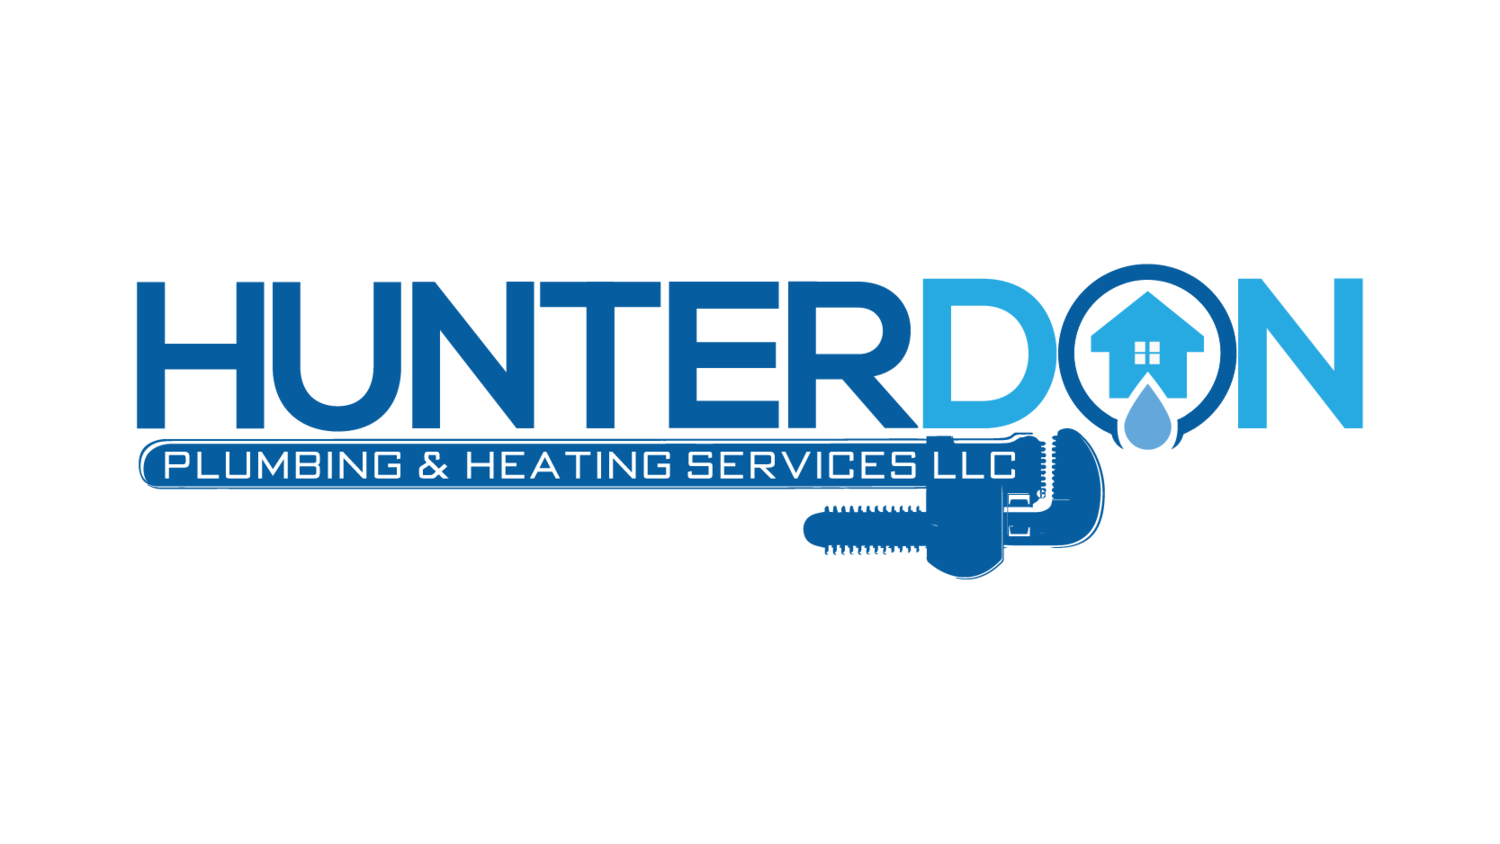 Hunterdon Plumbing & Heating Services